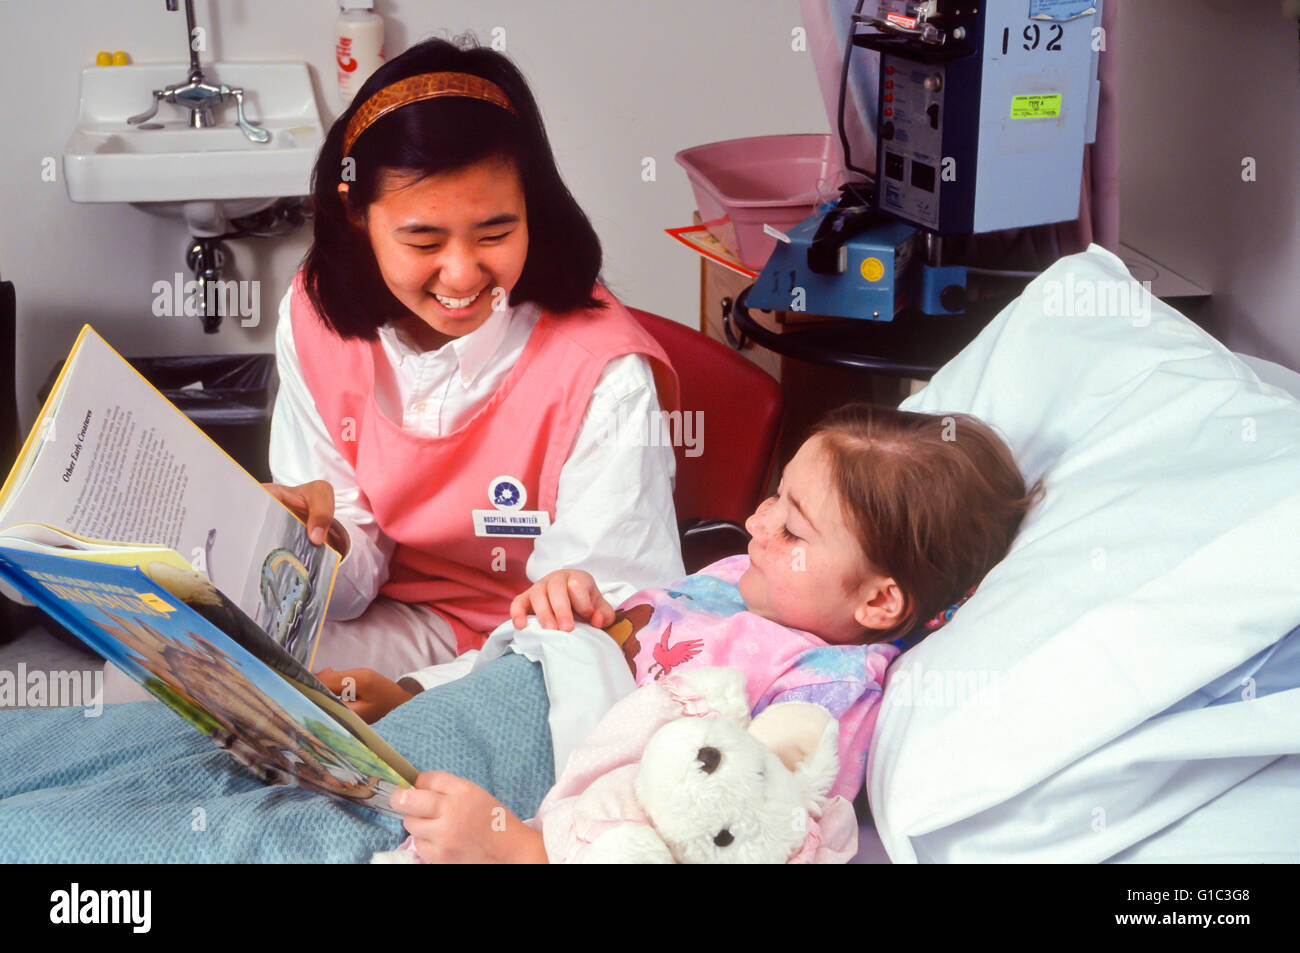 Compassionate Korean American teen cheering up and hanging out with  a very sick little girl with cancer. MR ©Myrleen - Stock Image